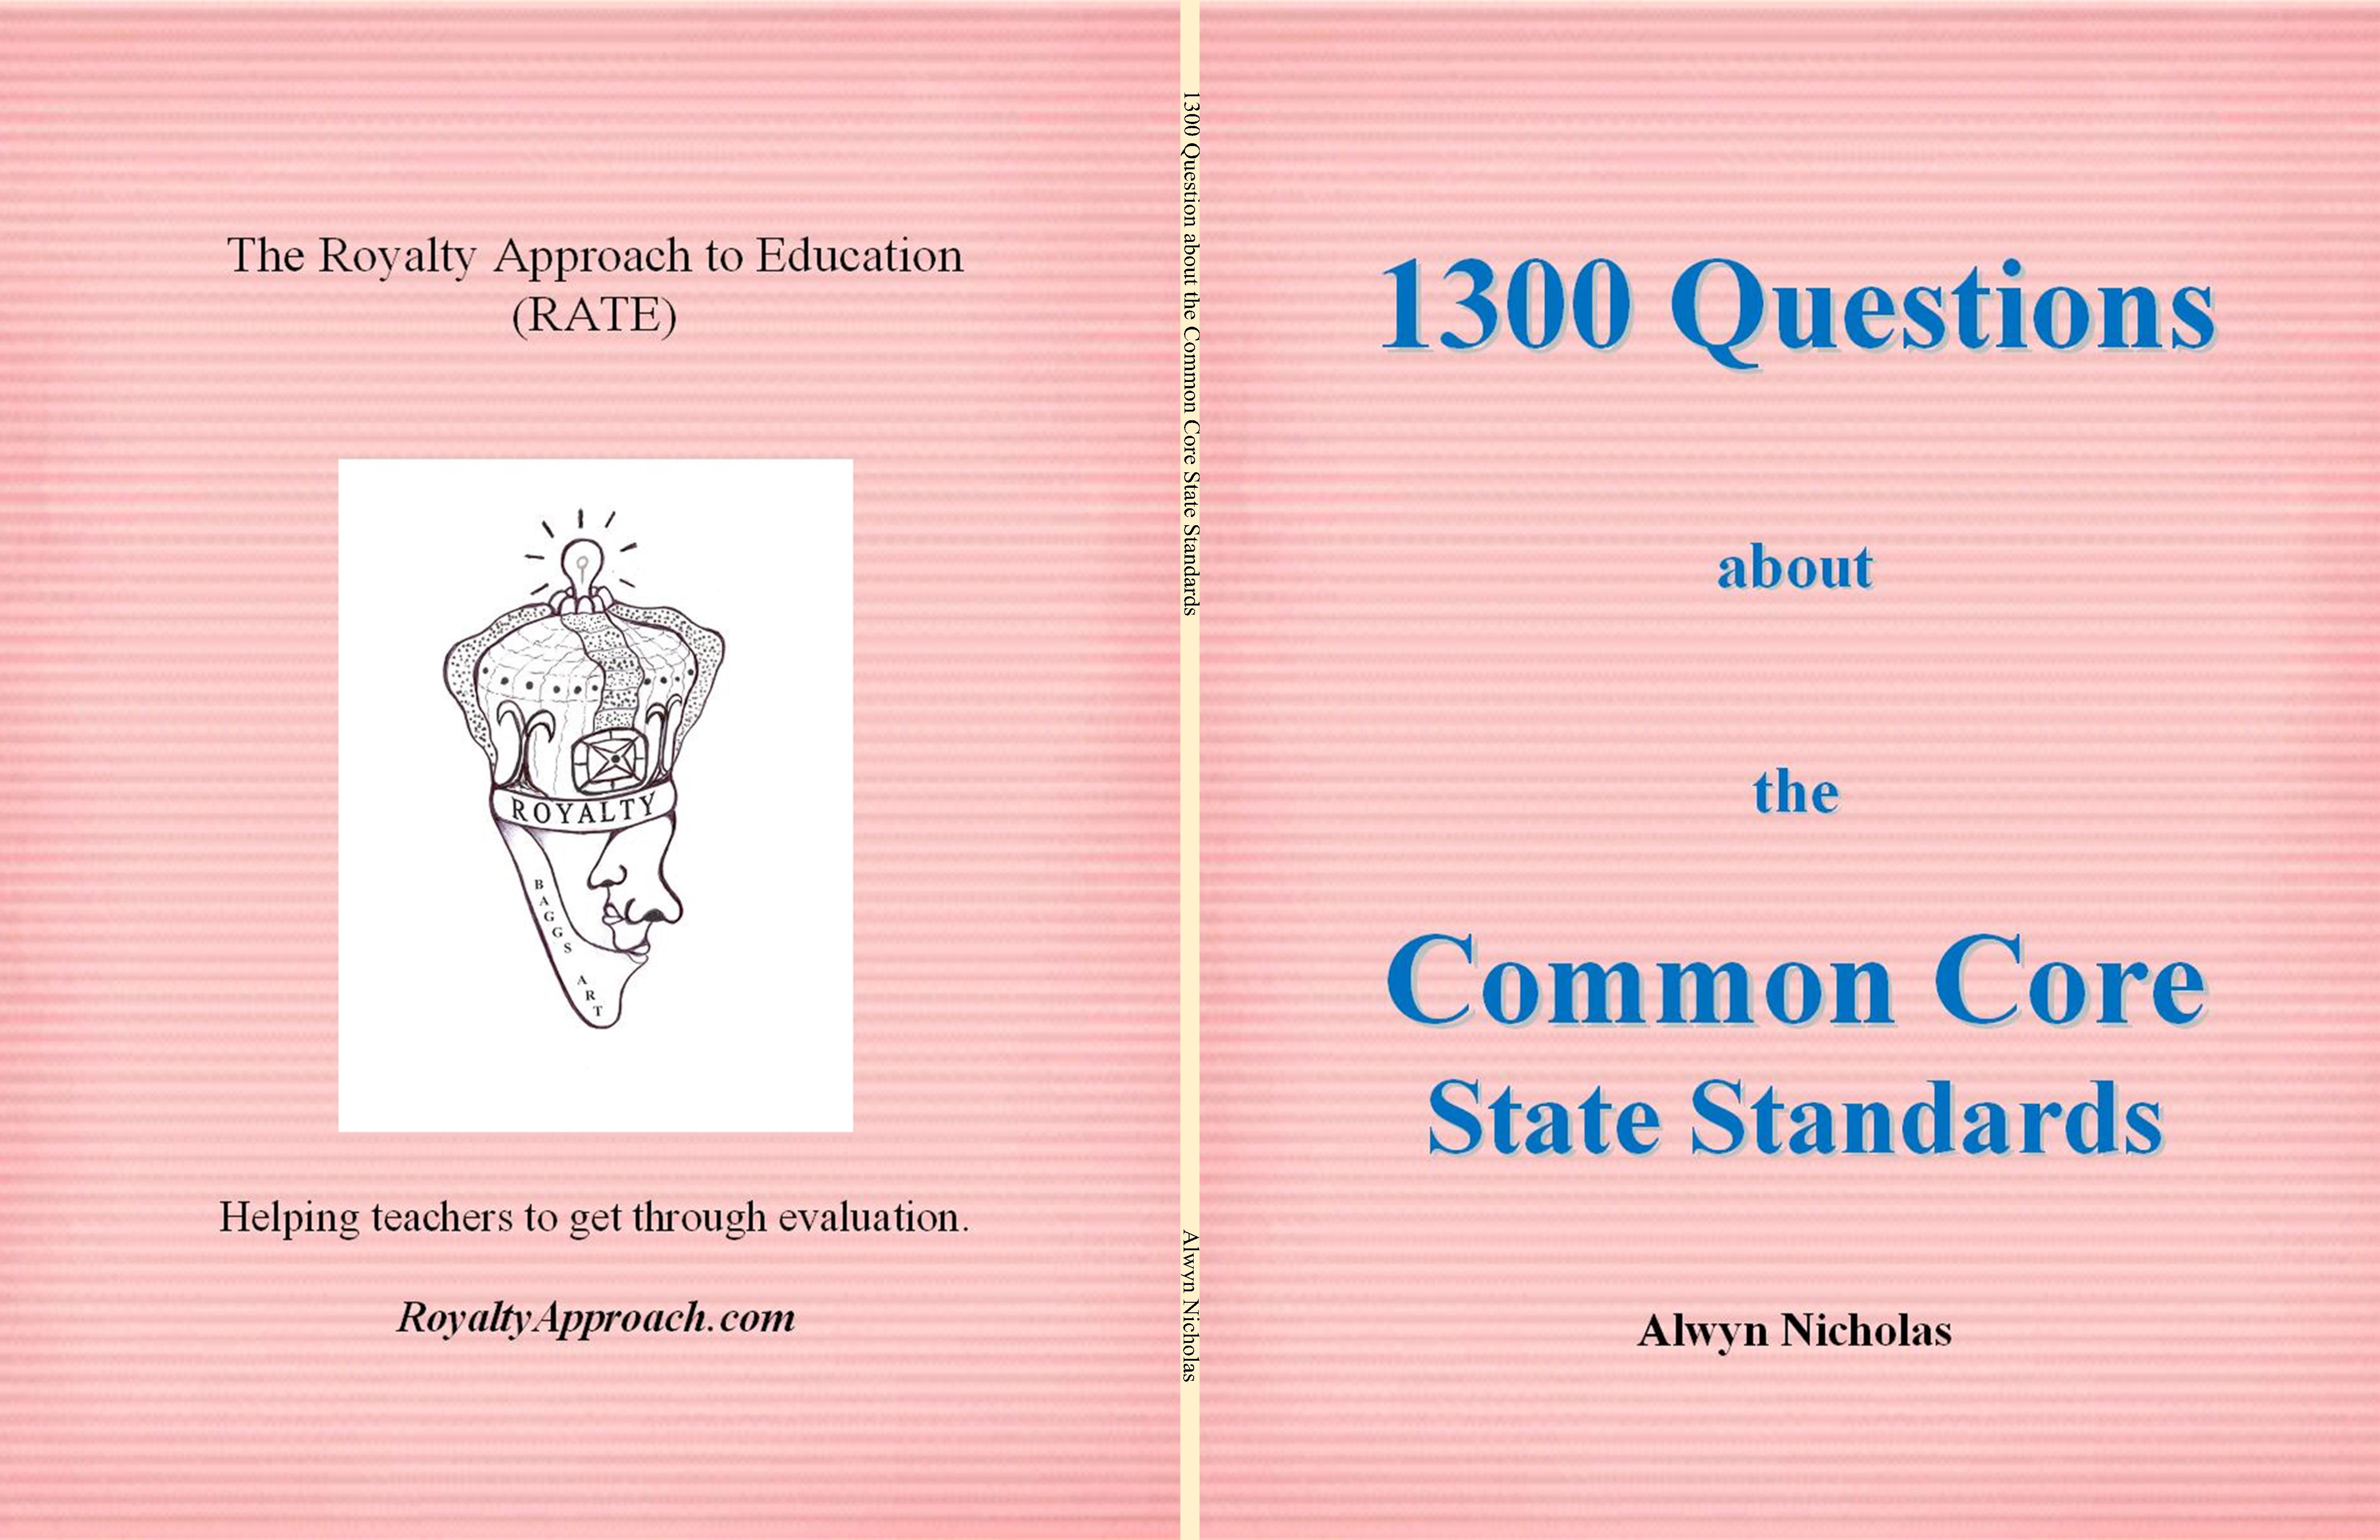 1300 Question about the Common Core State Standards cover image